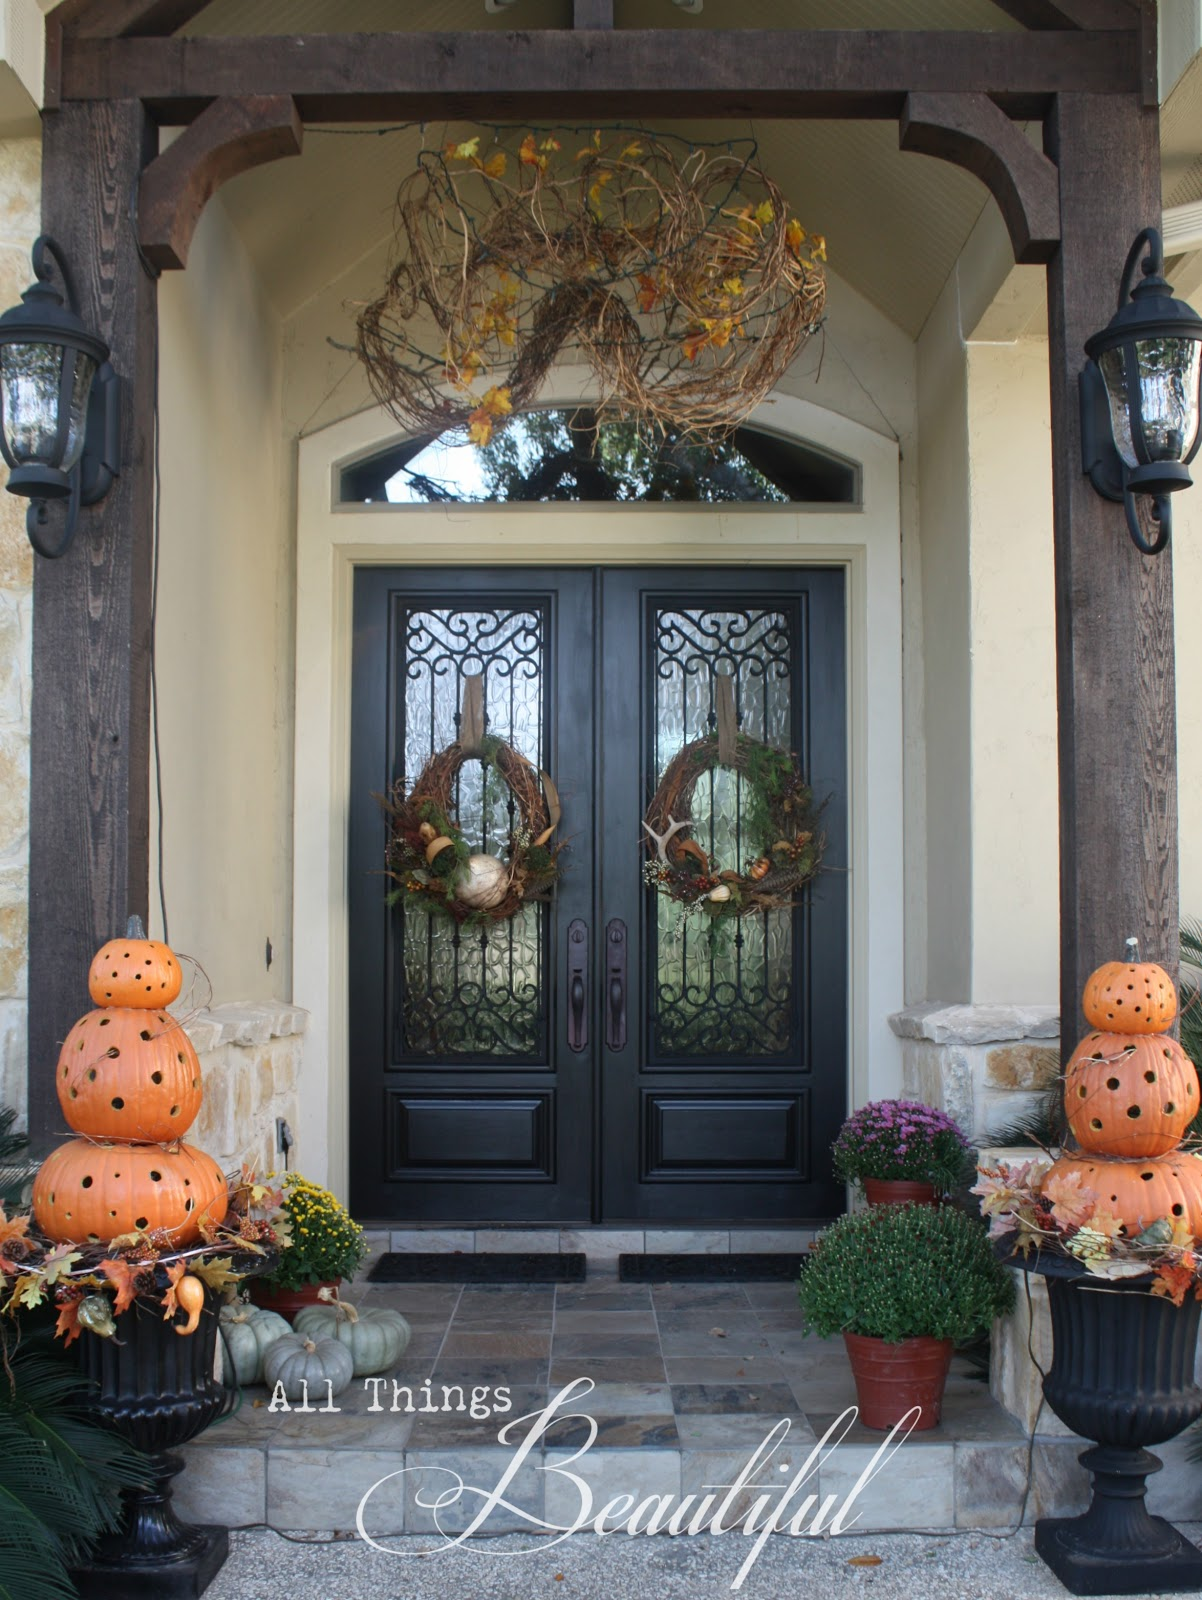 A Beautiful African: All Things Beautiful: {Fall Wreath} Porch Decor